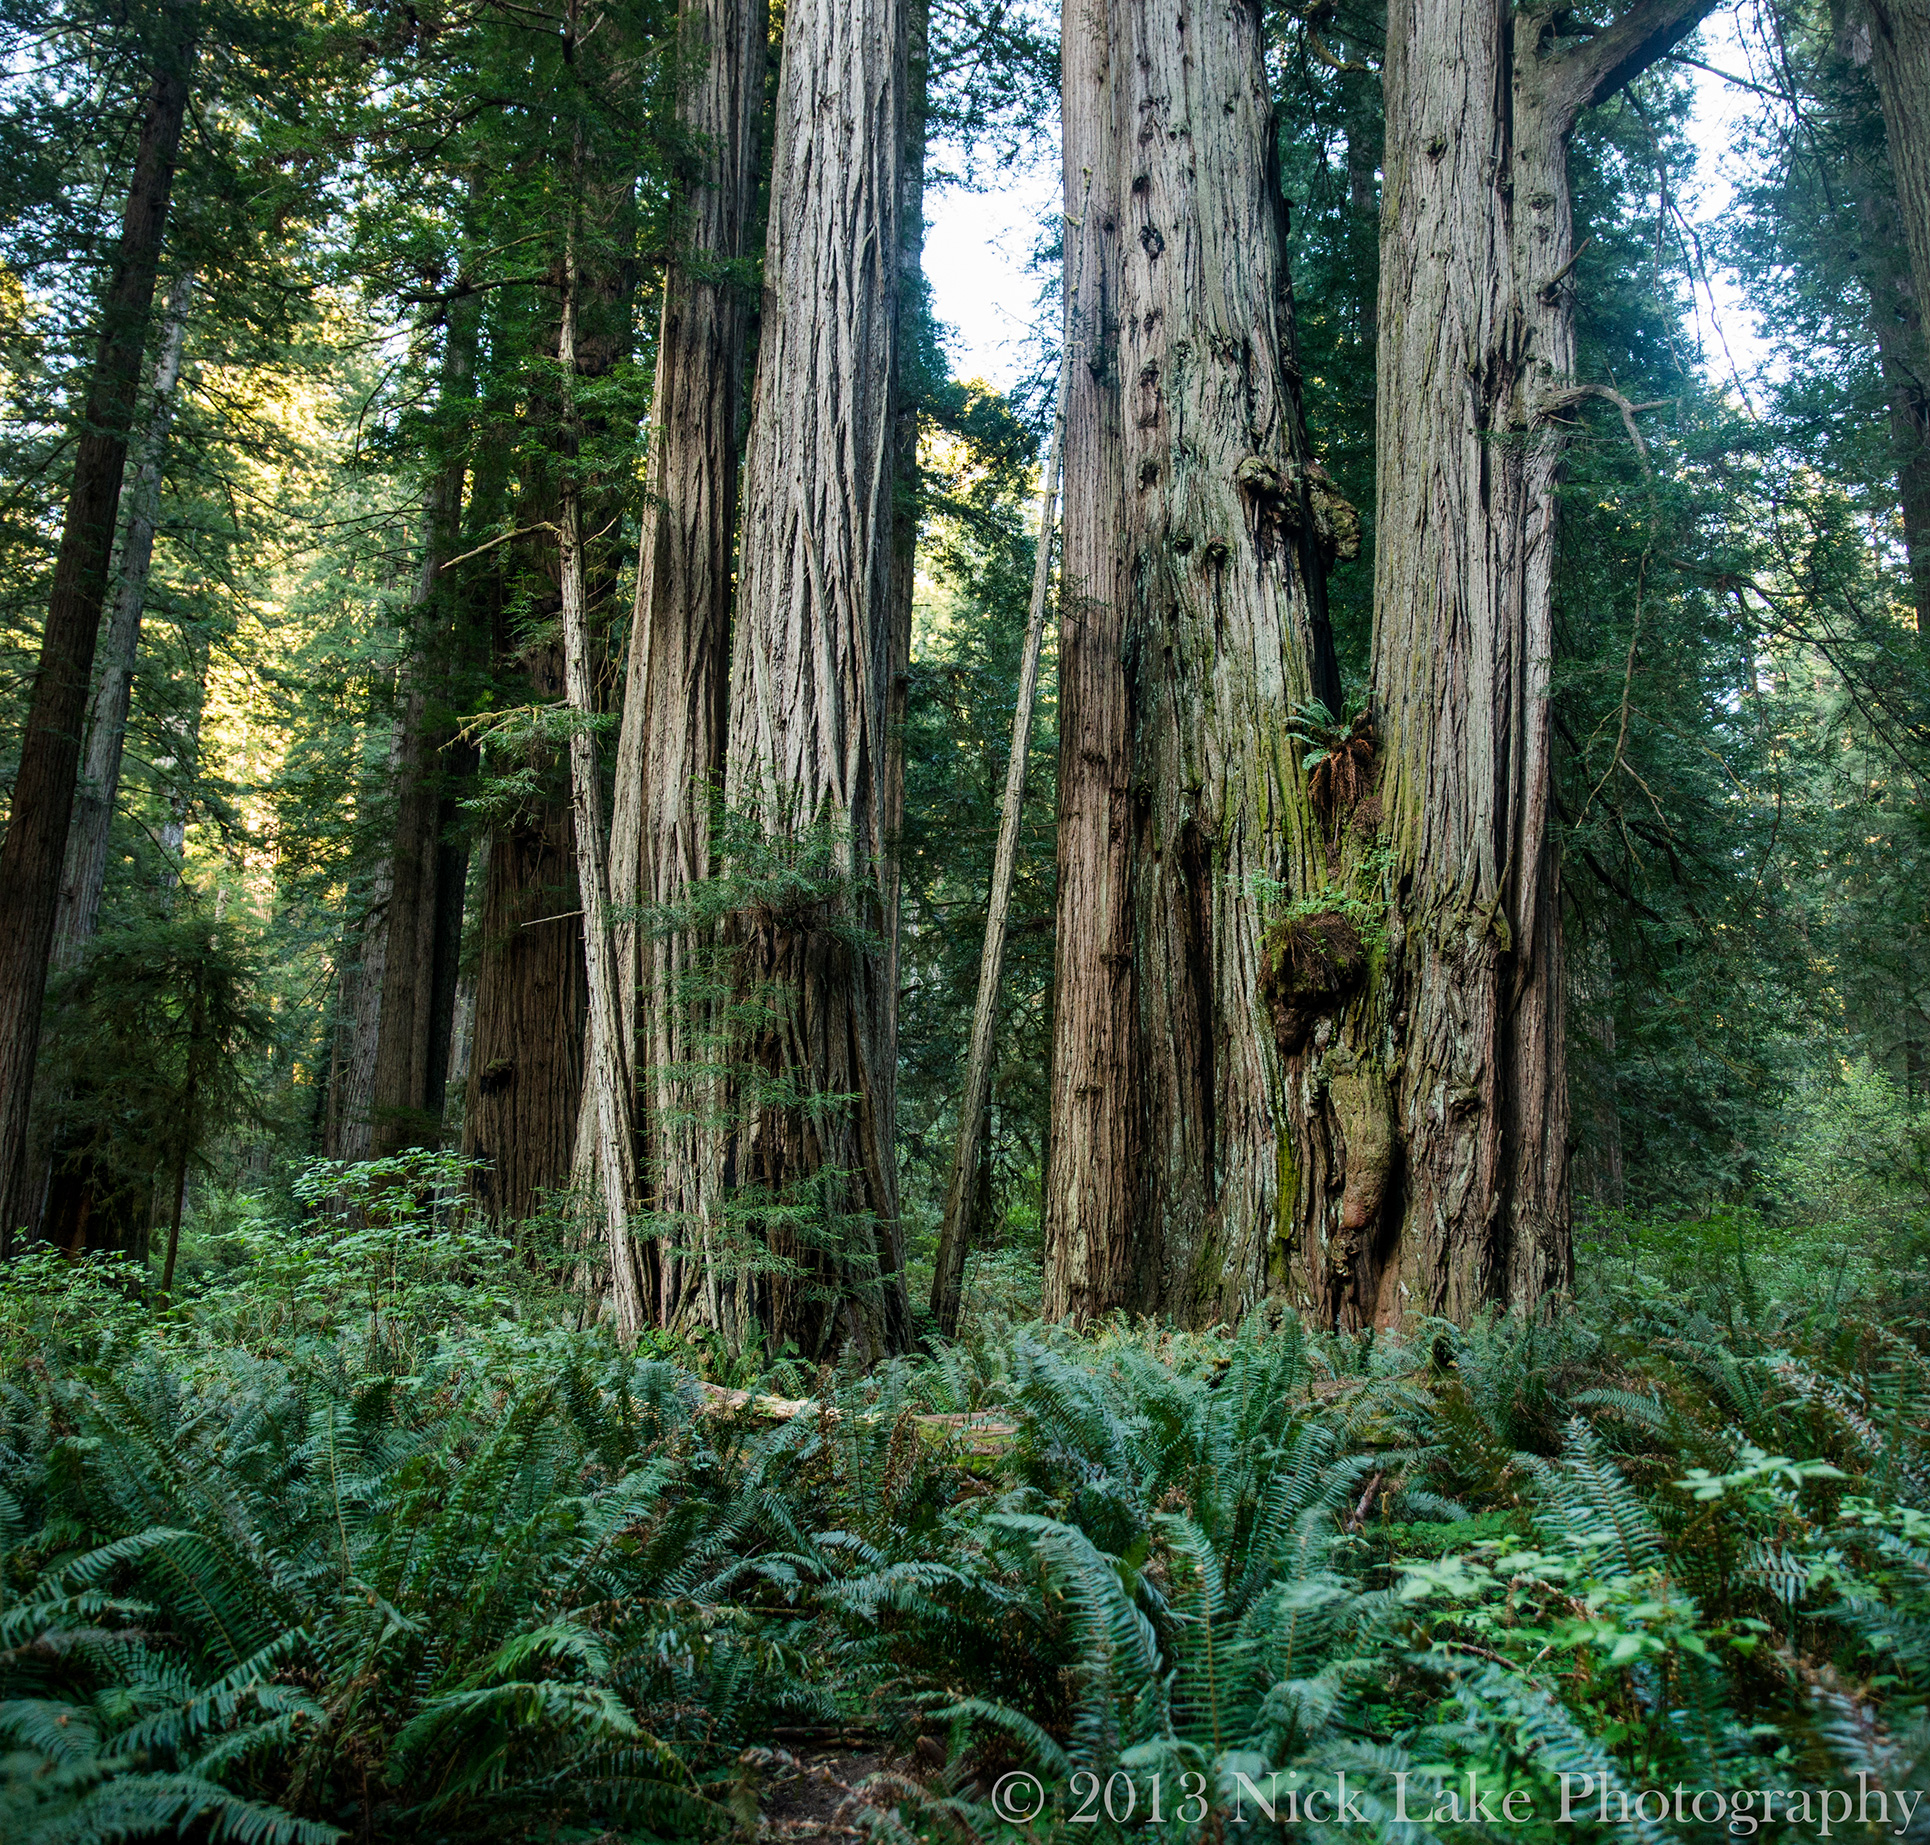 Giant, gnarly redwoods and dense understory create a mystical aura